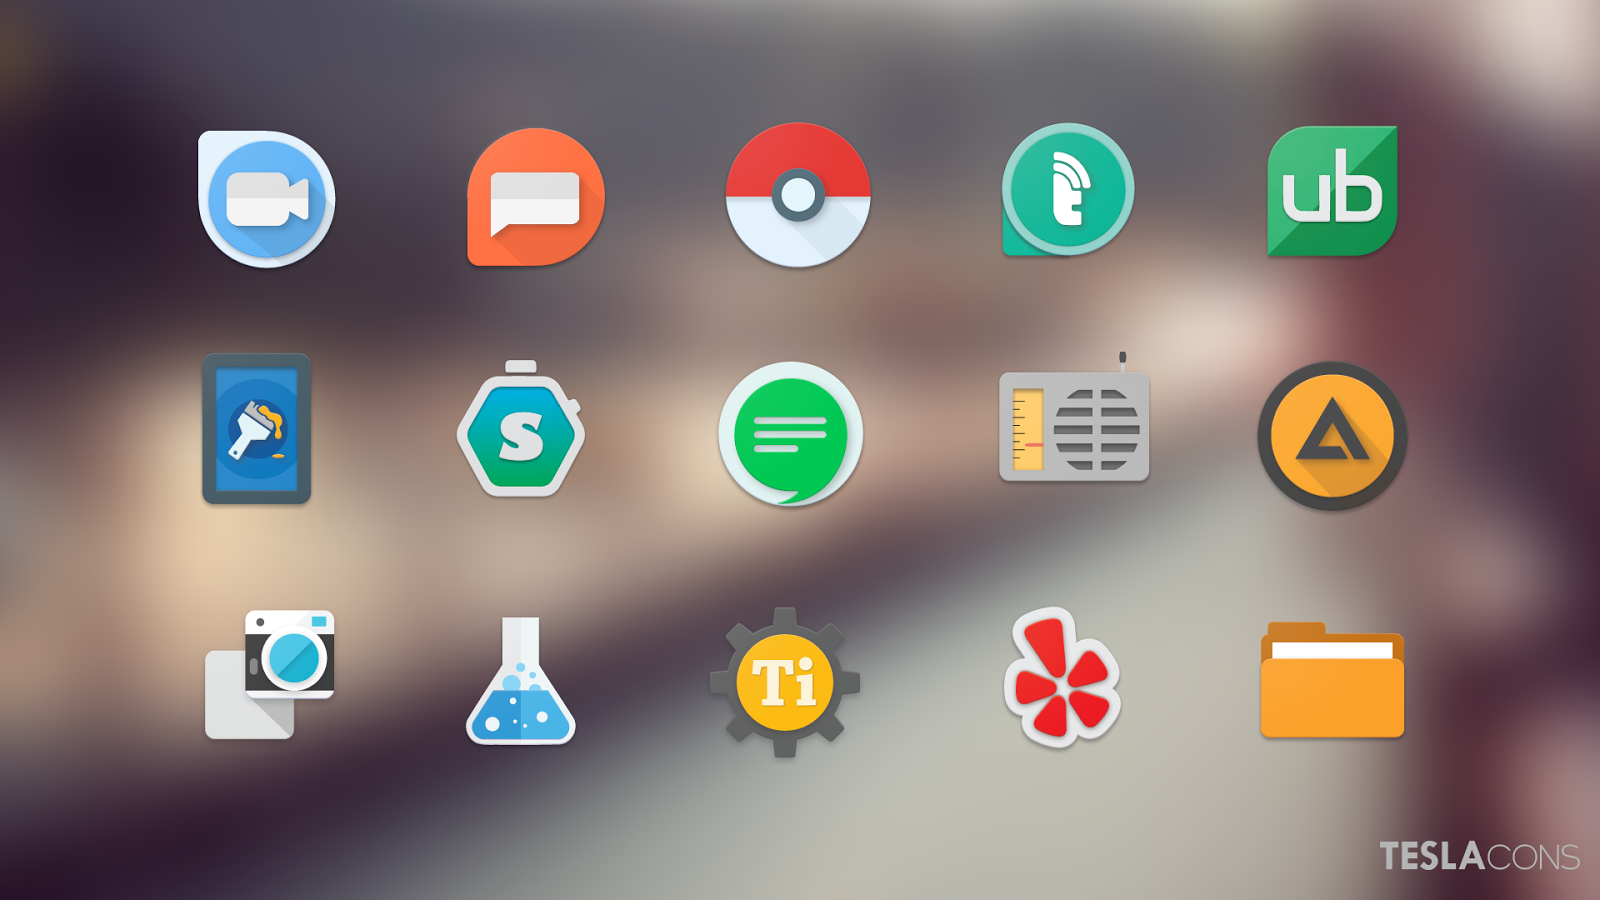 Teslacons Icon Pack Screenshot 1